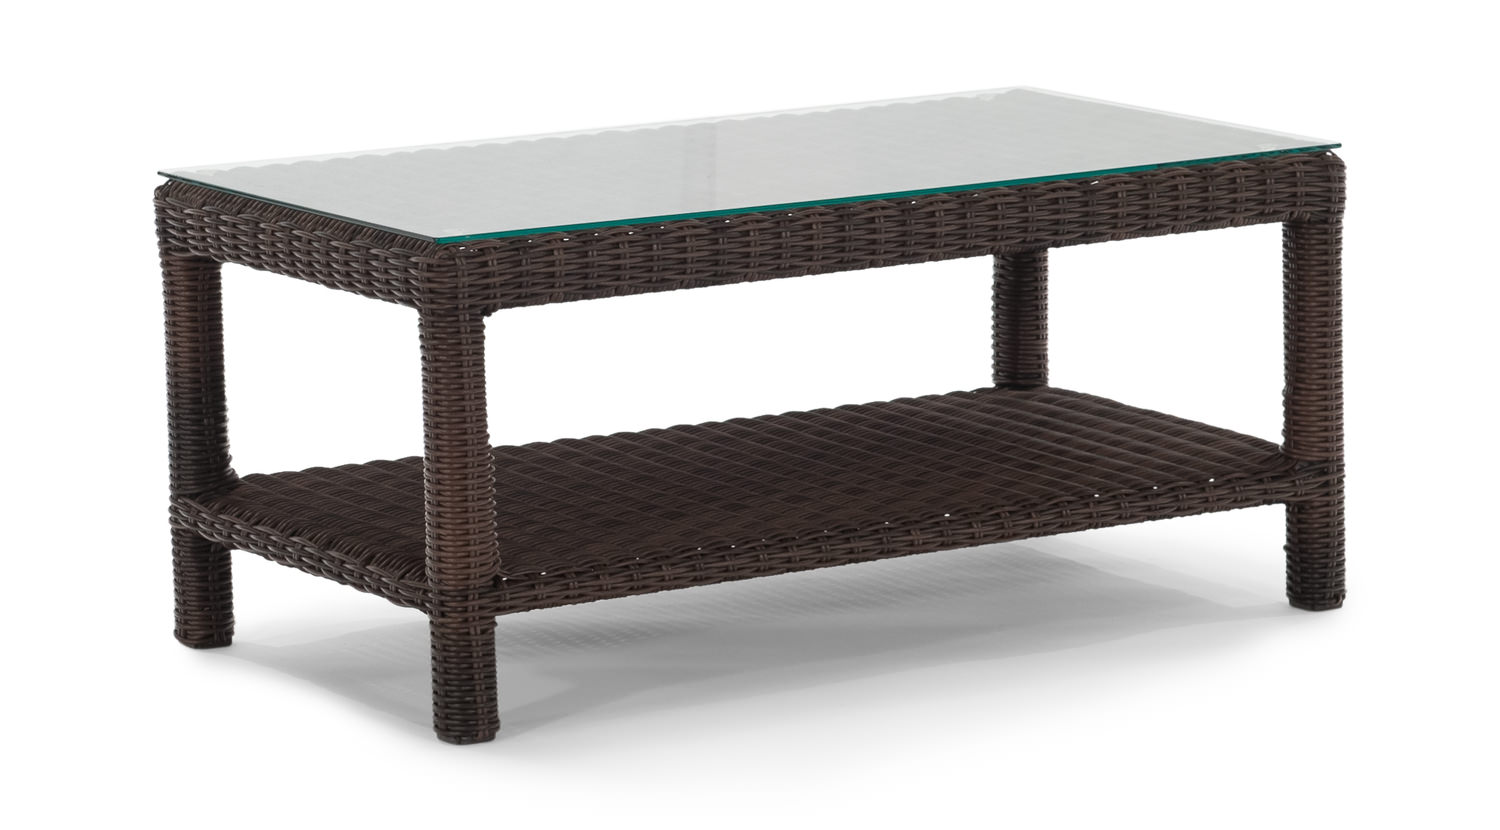 Cana Coffee Table Outdoor Wicker HOM Furniture Furniture